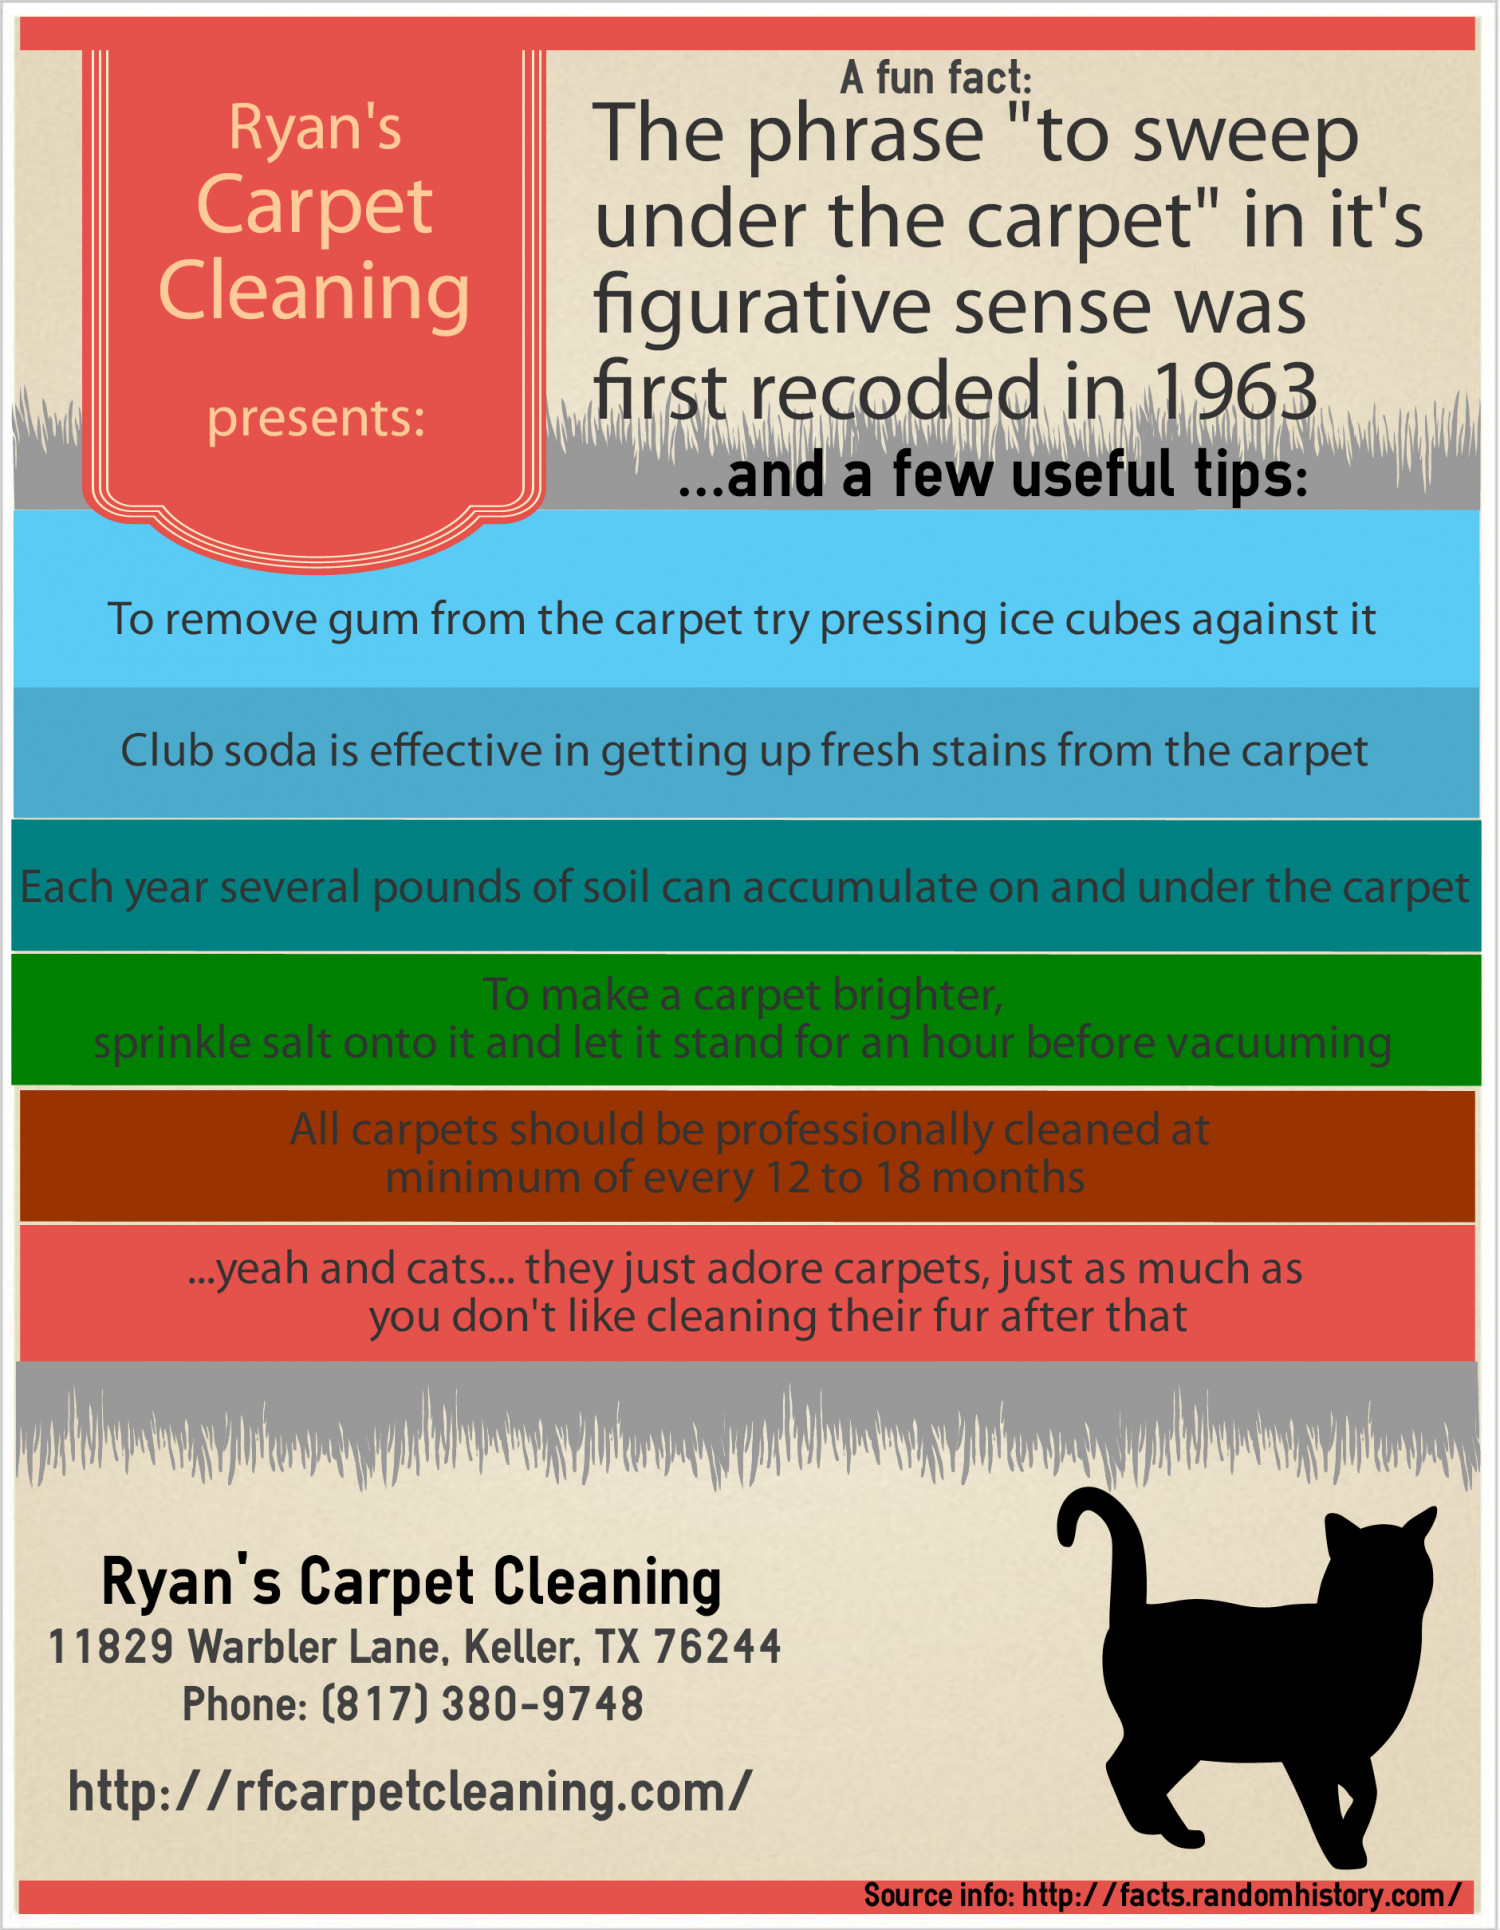 A Few Awesome Carpet Cleaning Service Tips and Facts Infographic